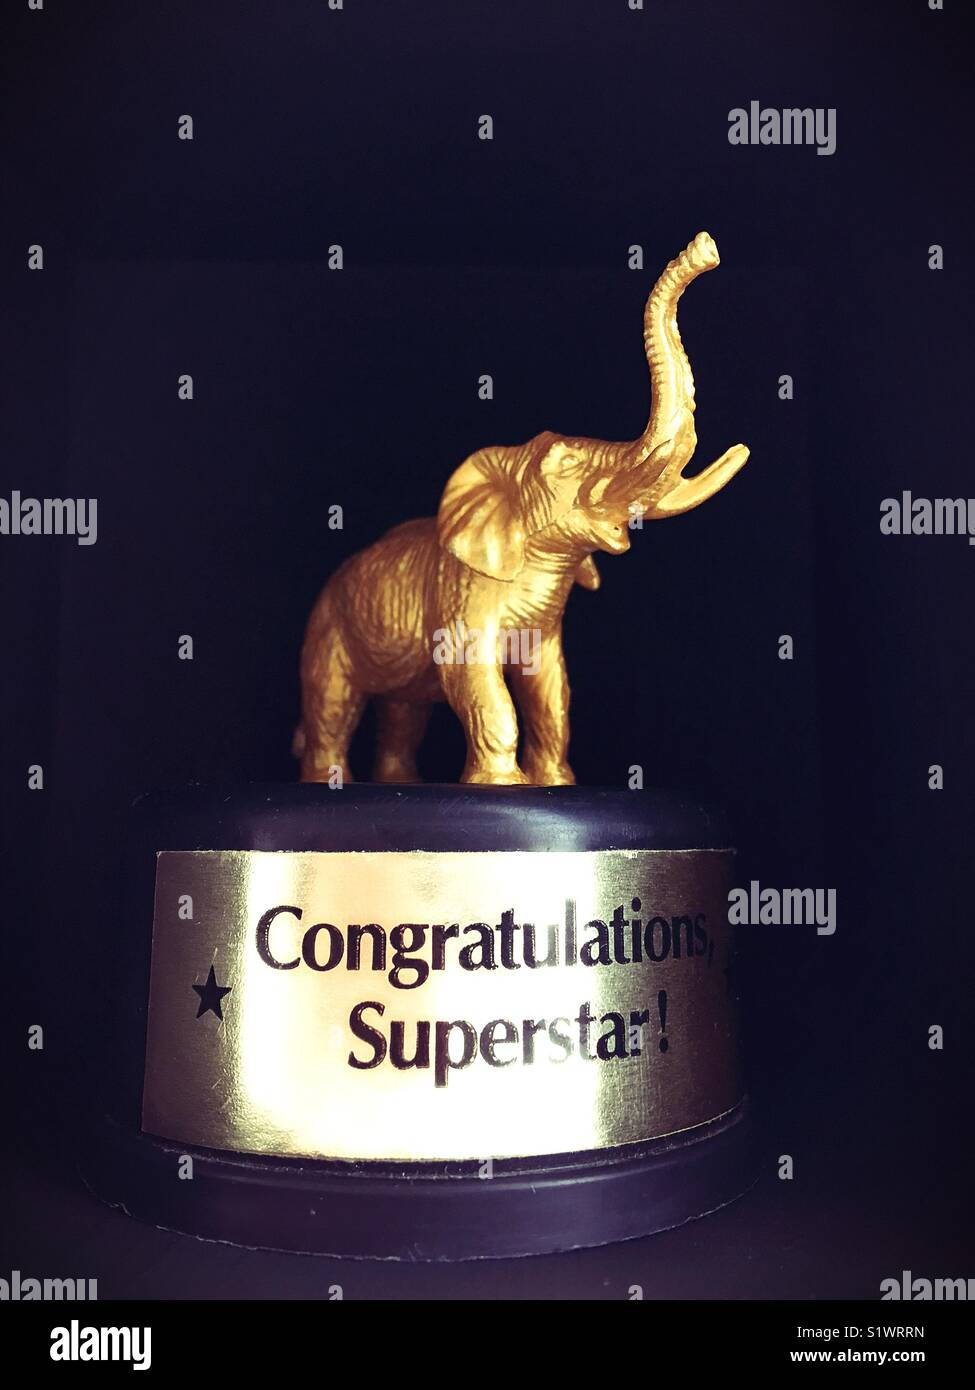 A gold elephant figurine on a trophy stand. - Stock Image